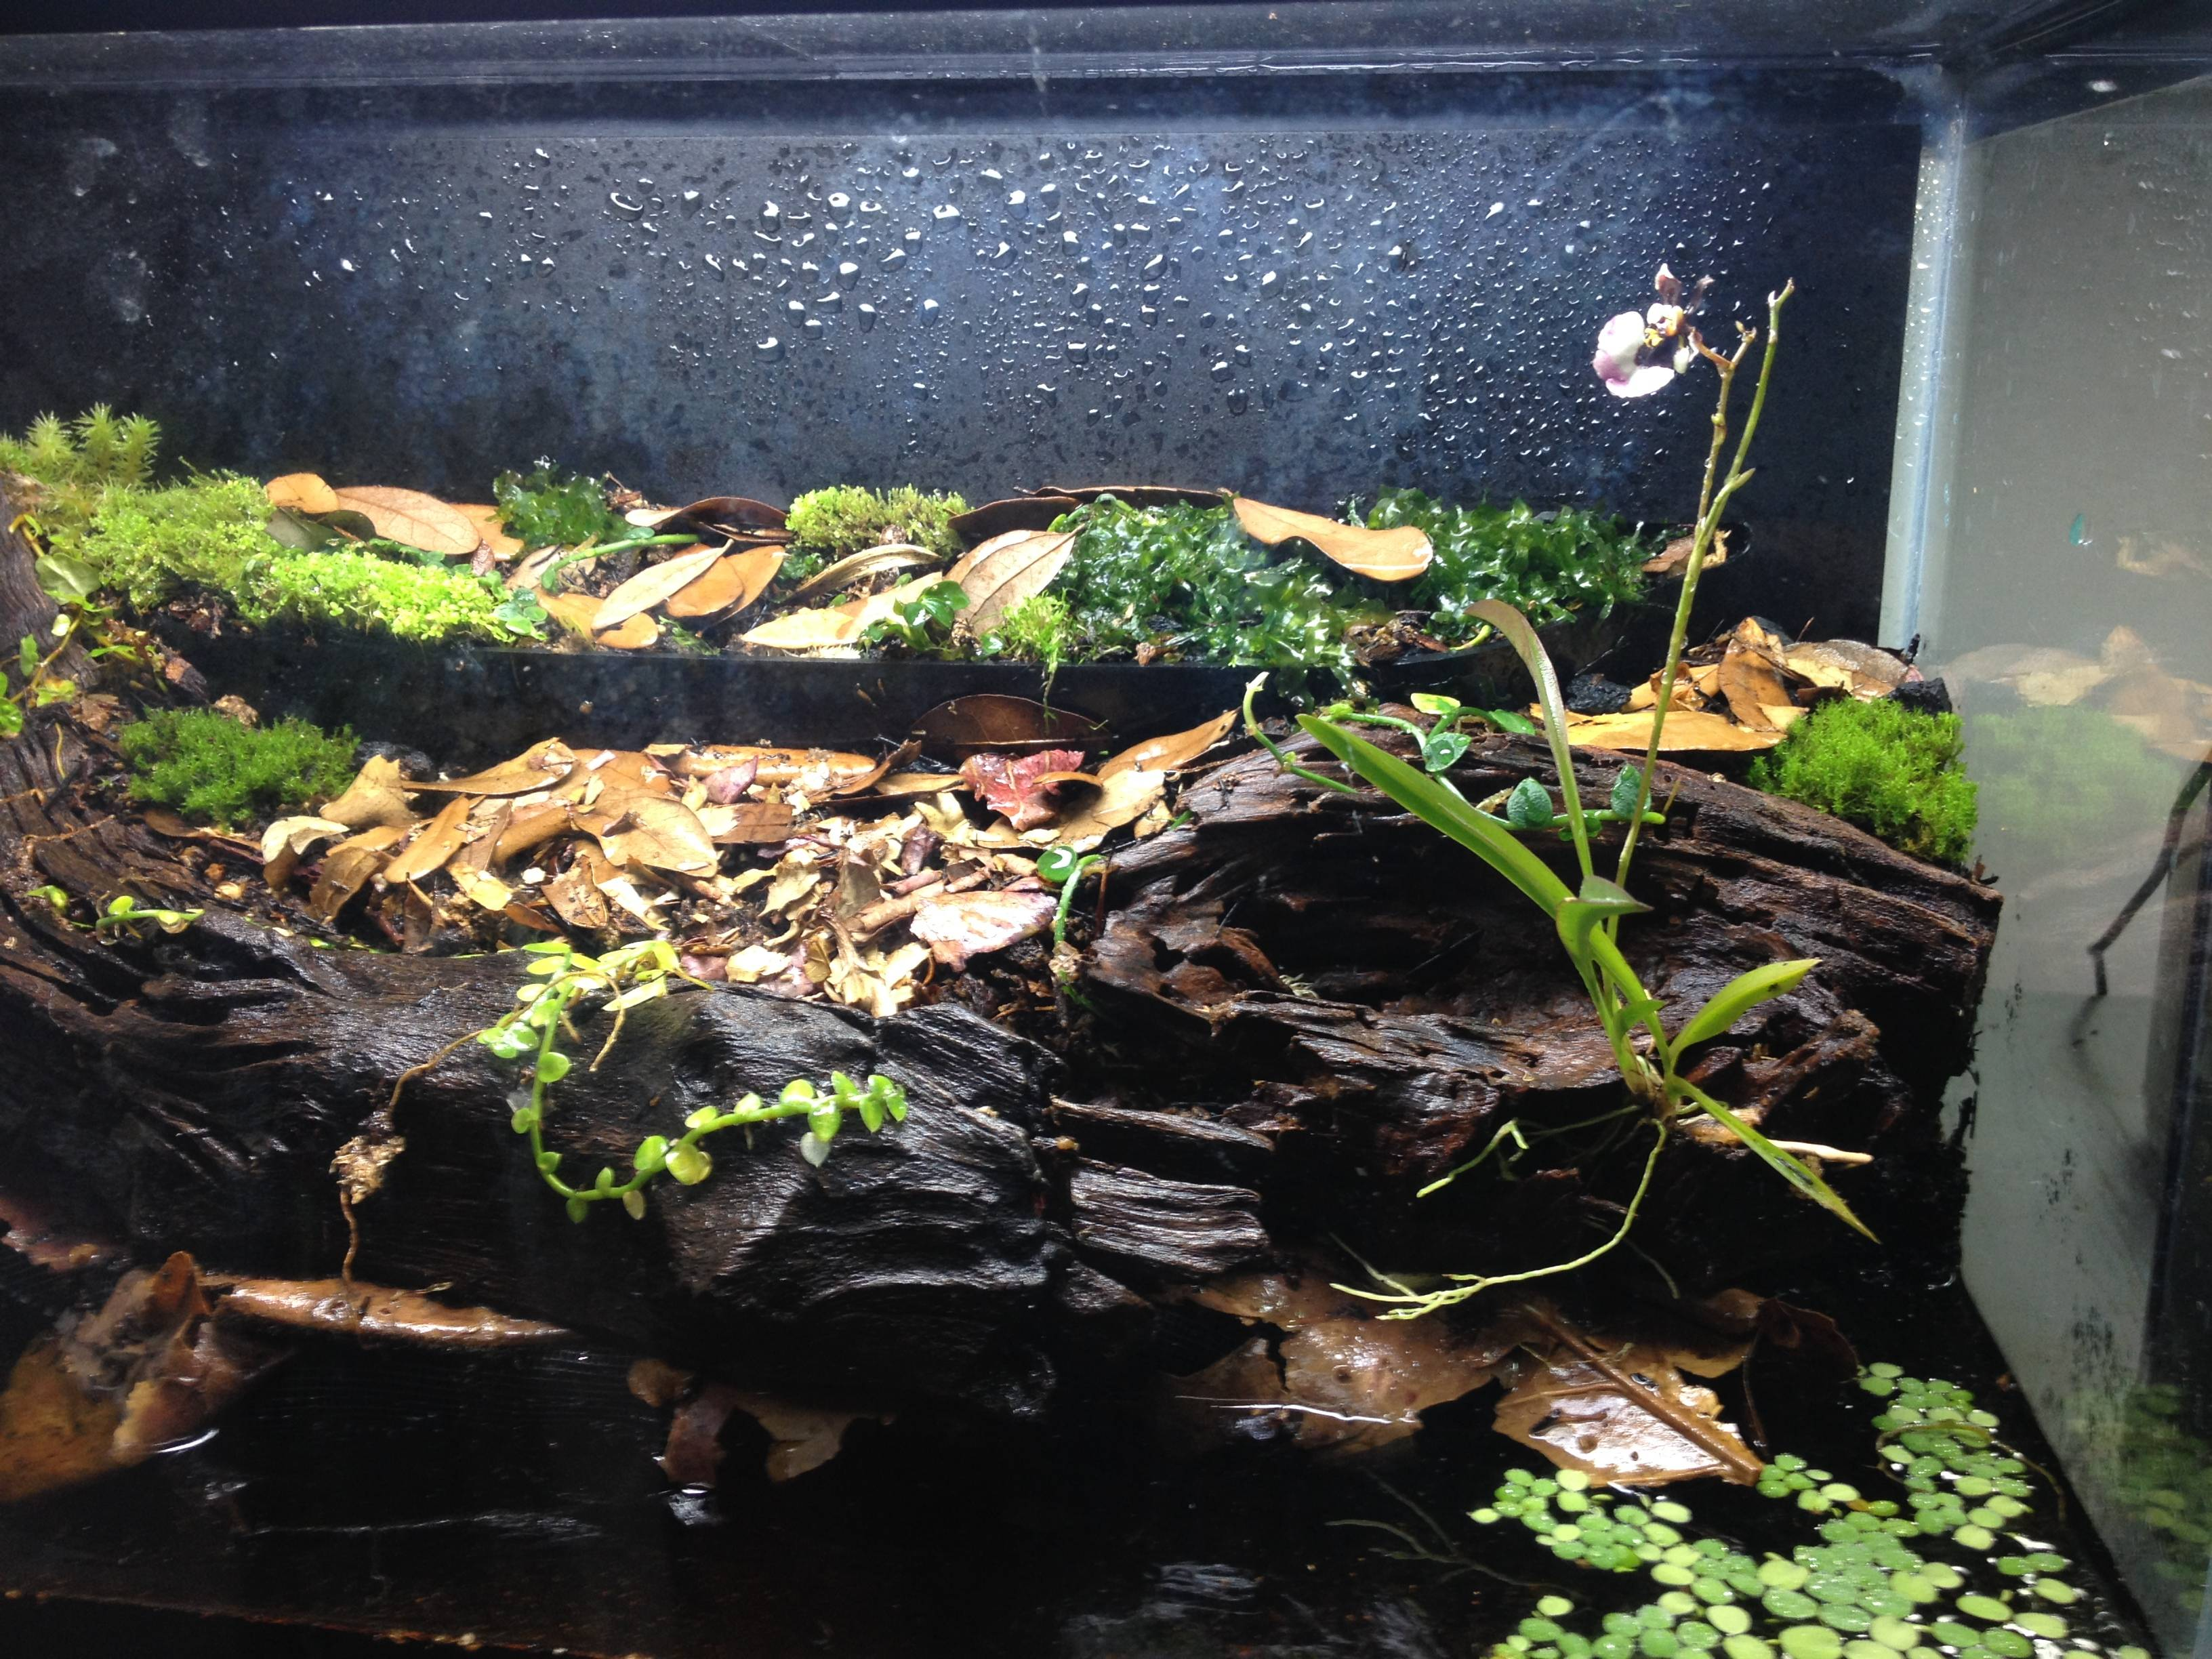 mellowvision.com — A quick 10 gallon paludarium for crabs 10 Gallon Paludarium